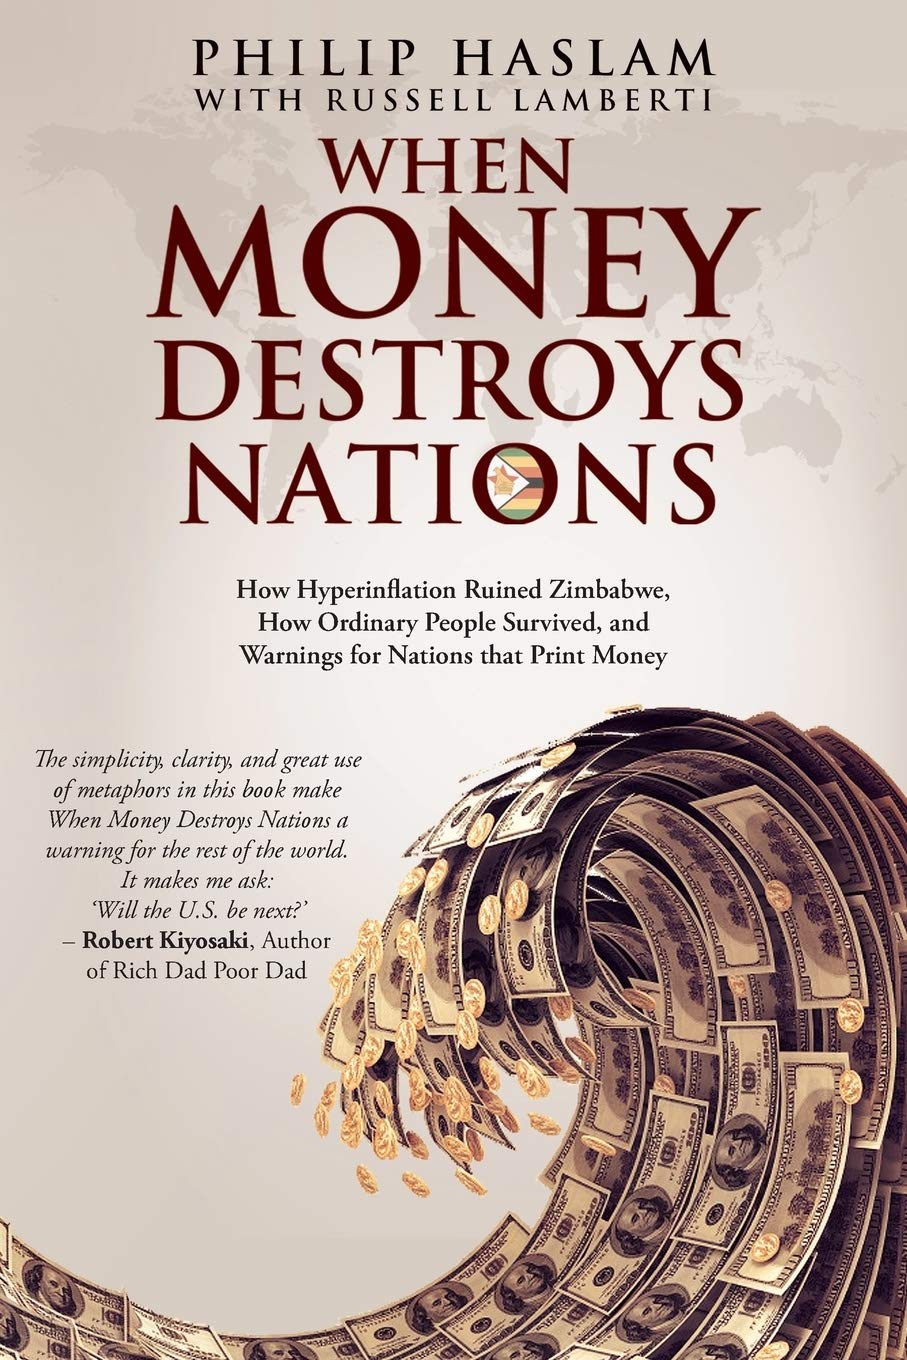 When Money Destroys Nations: How Hyperinflation Ruined Zimbabwe How Ordinary People Survived and Warnings for Nations that Print Money